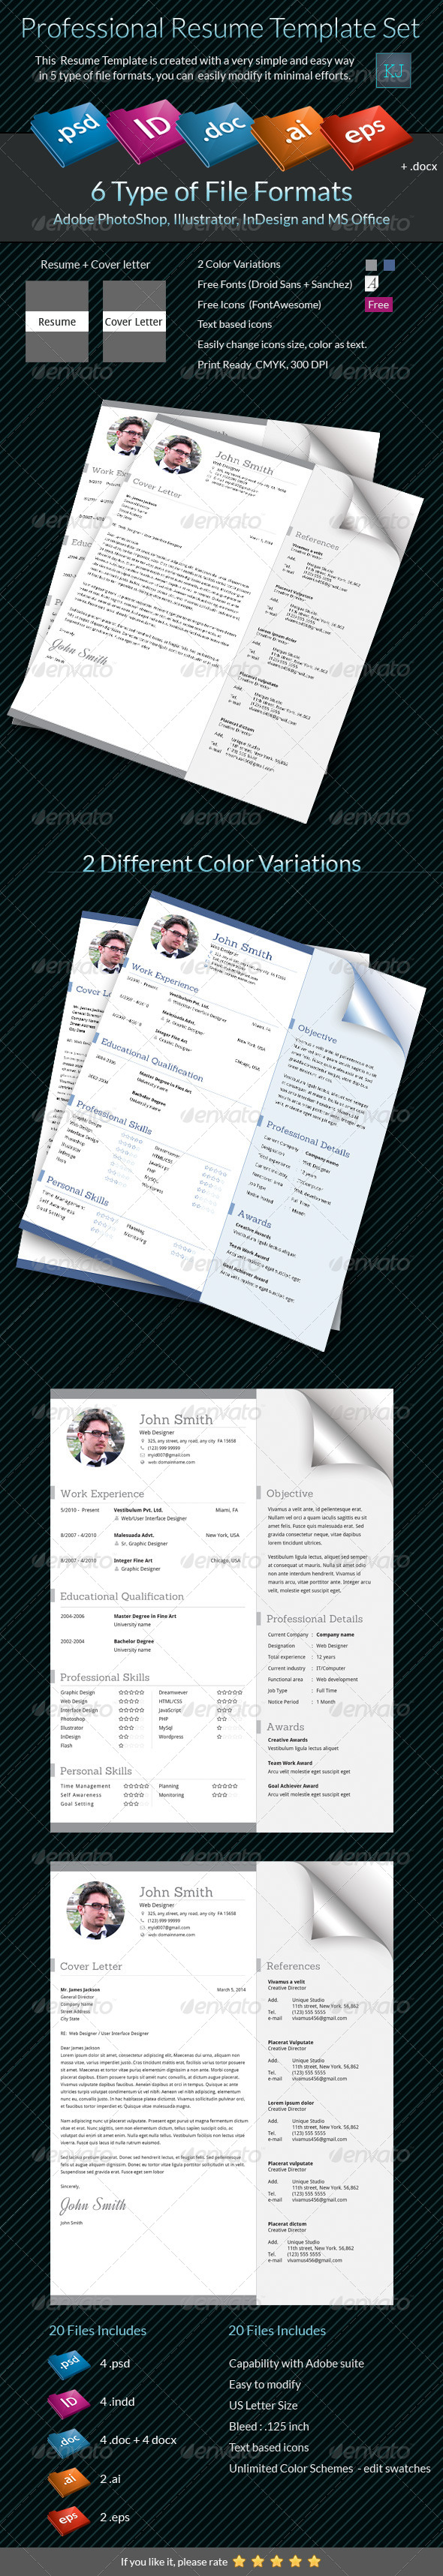 GraphicRiver Professional Resume Template Set 6812930